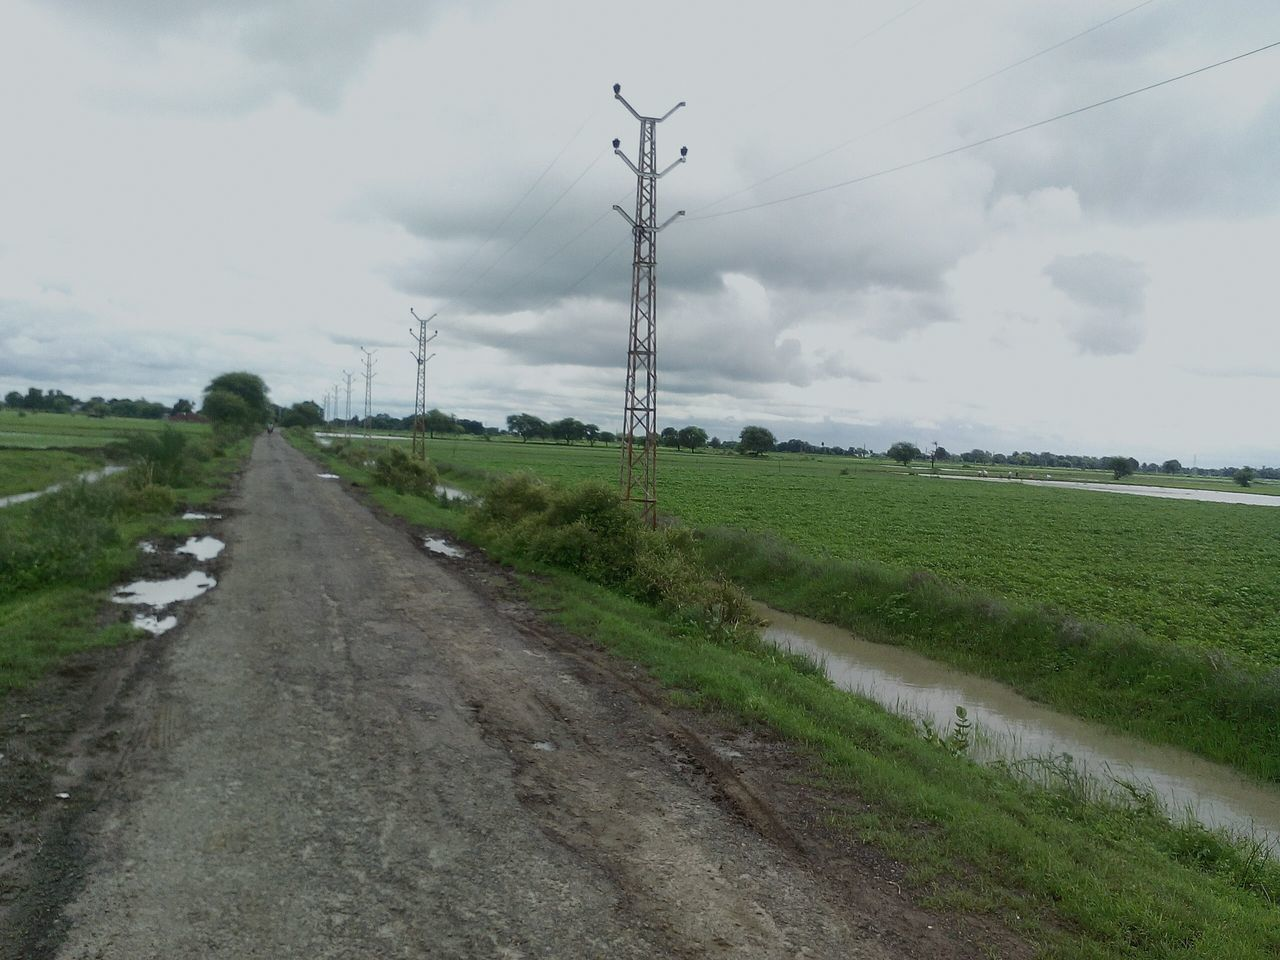 cable, field, connection, day, the way forward, electricity pylon, outdoors, no people, electricity, sky, nature, landscape, rural scene, grass, road, fuel and power generation, telephone line